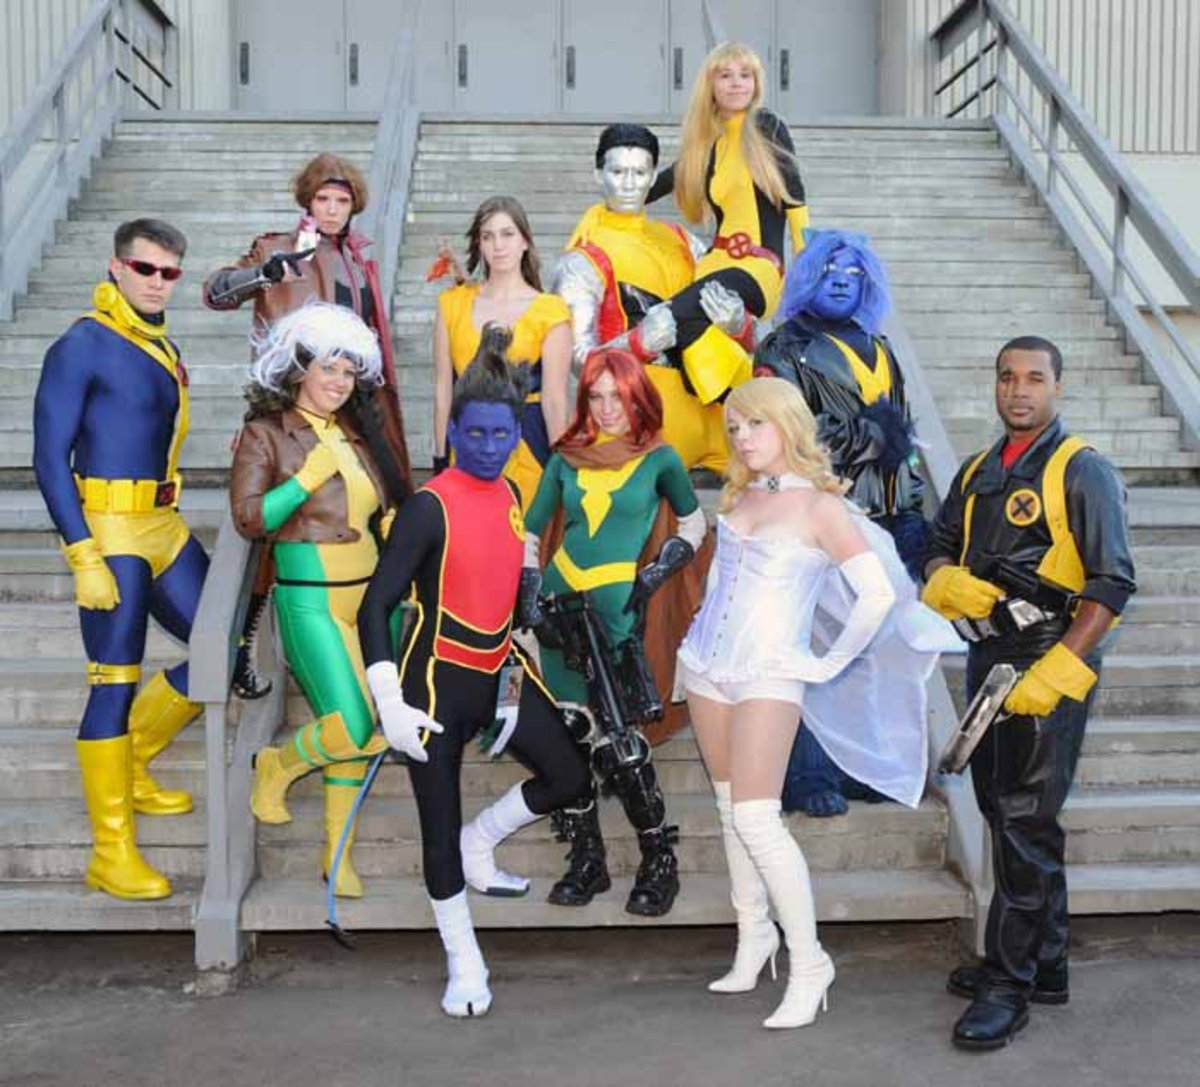 X men costume ideas and inspiration hubpages source solutioingenieria Image collections